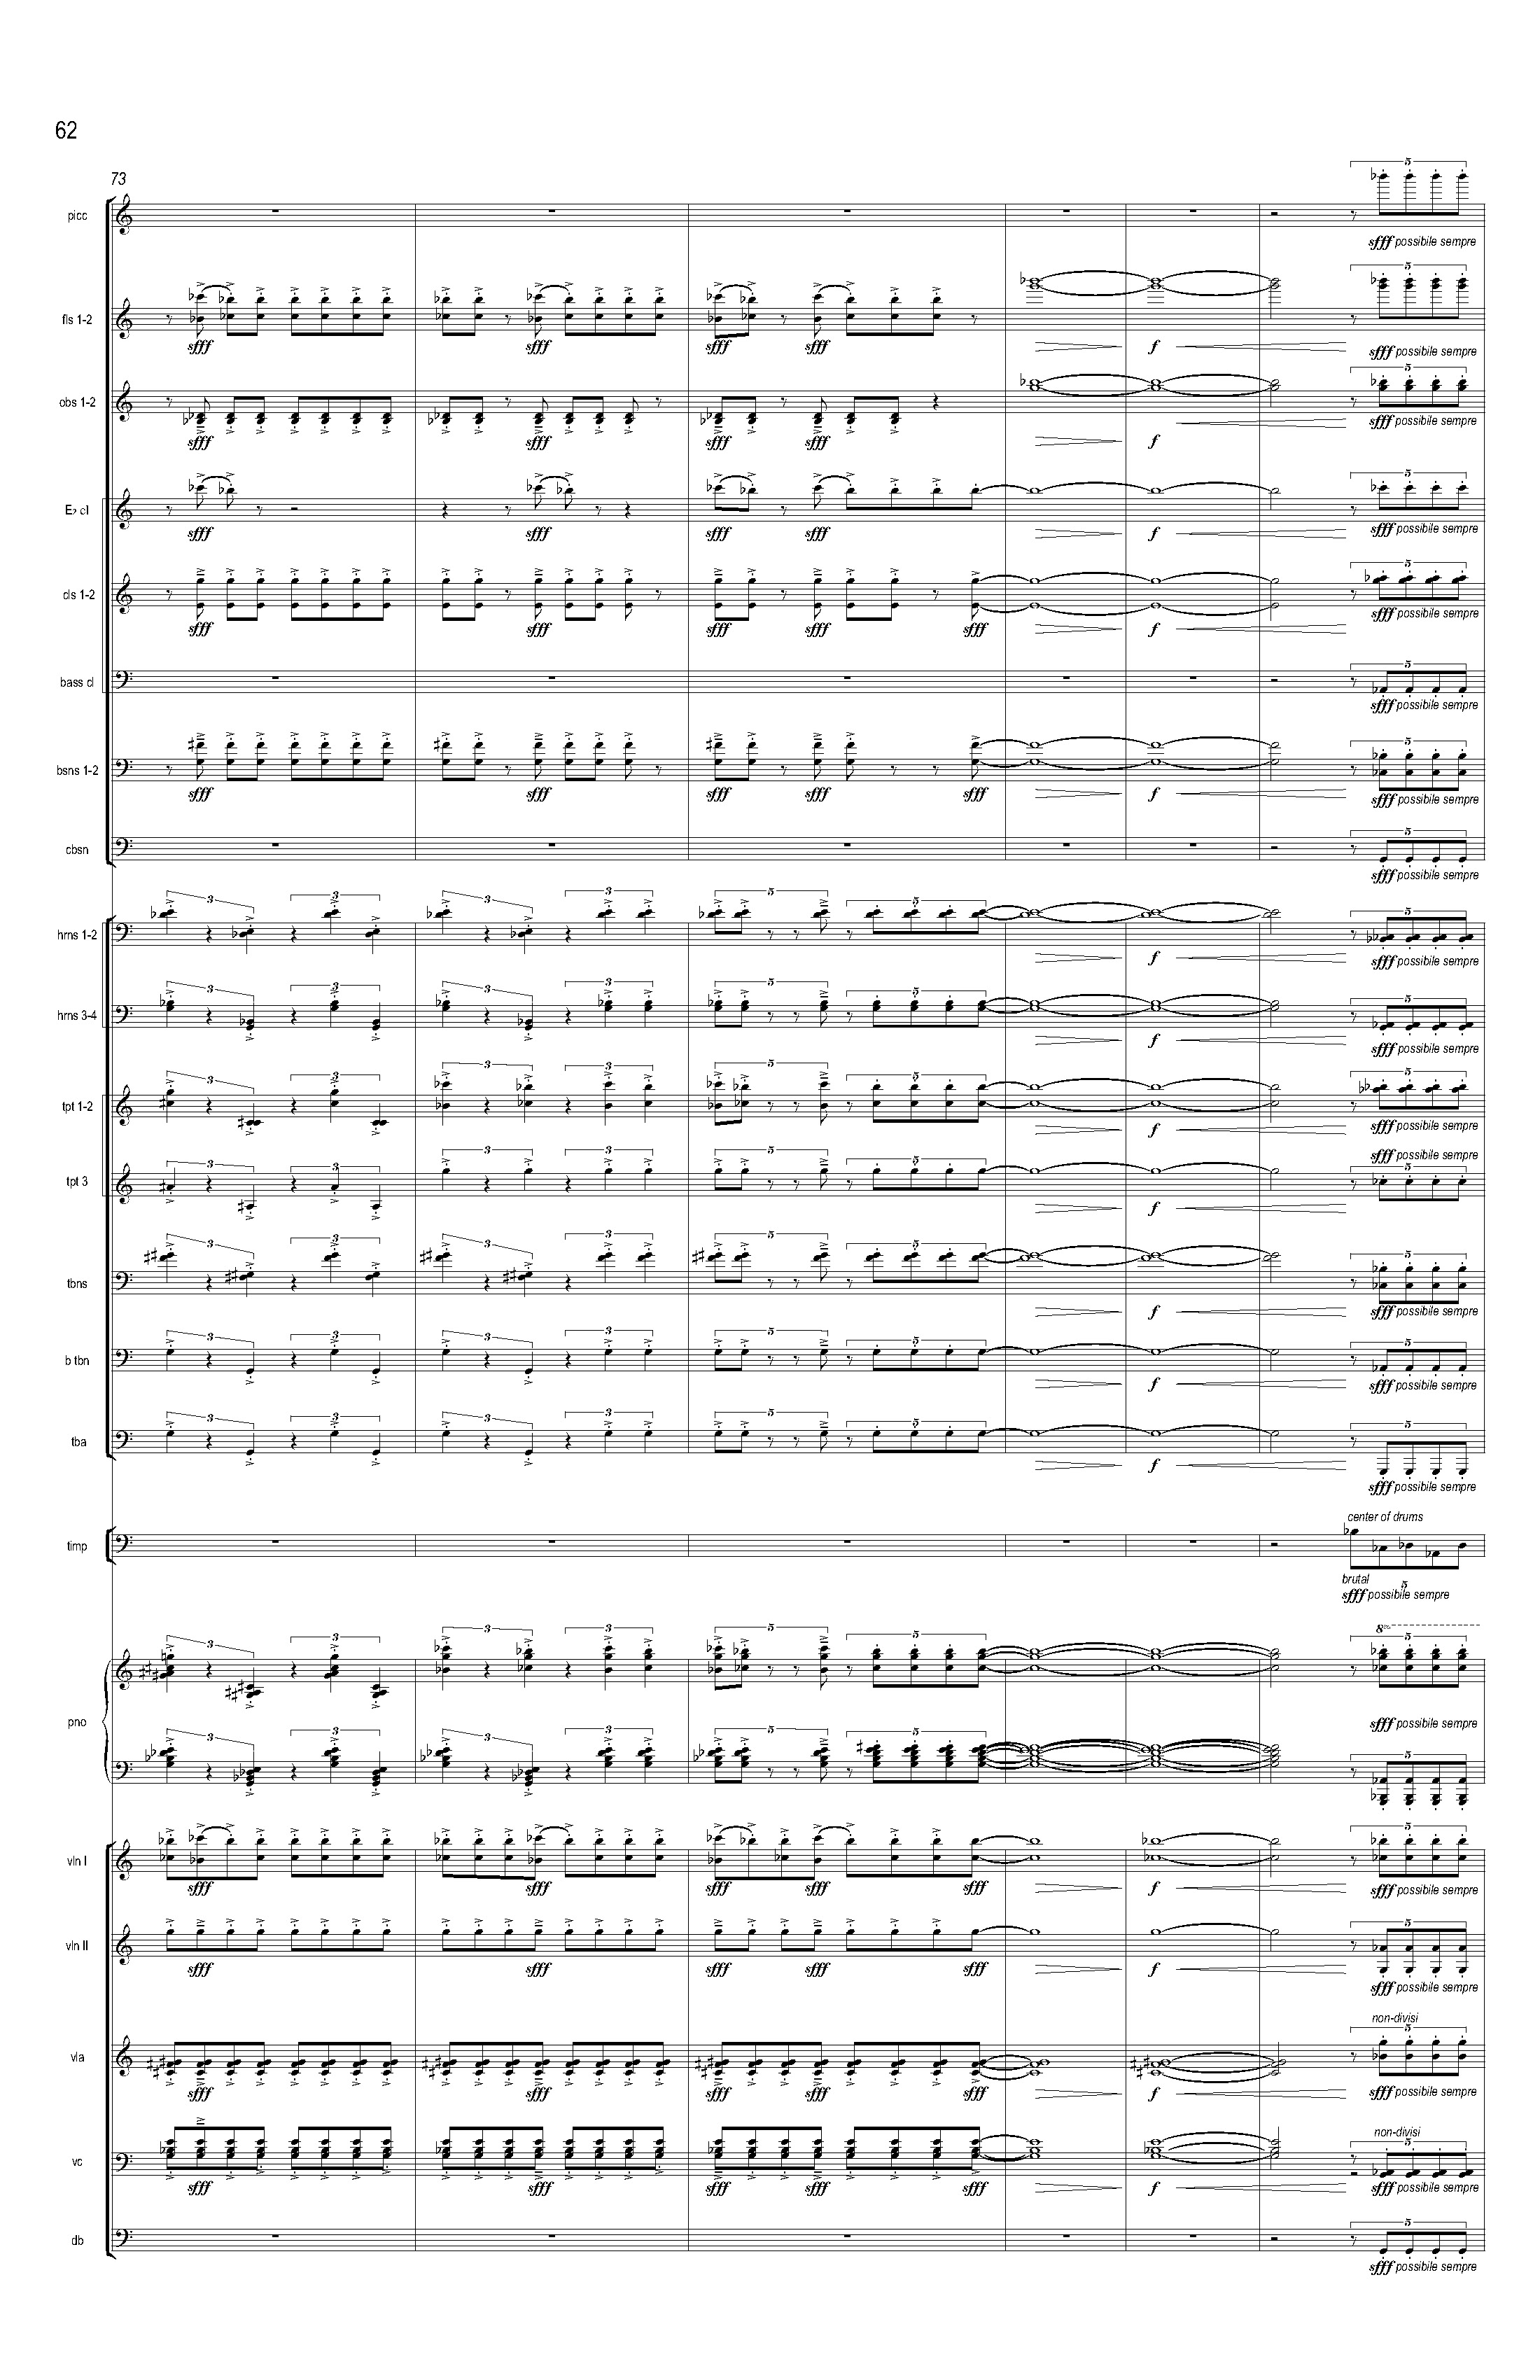 Ciach_Collective Uncommon REVISED_Full Score (Feb 2017)_Seite_68.jpg